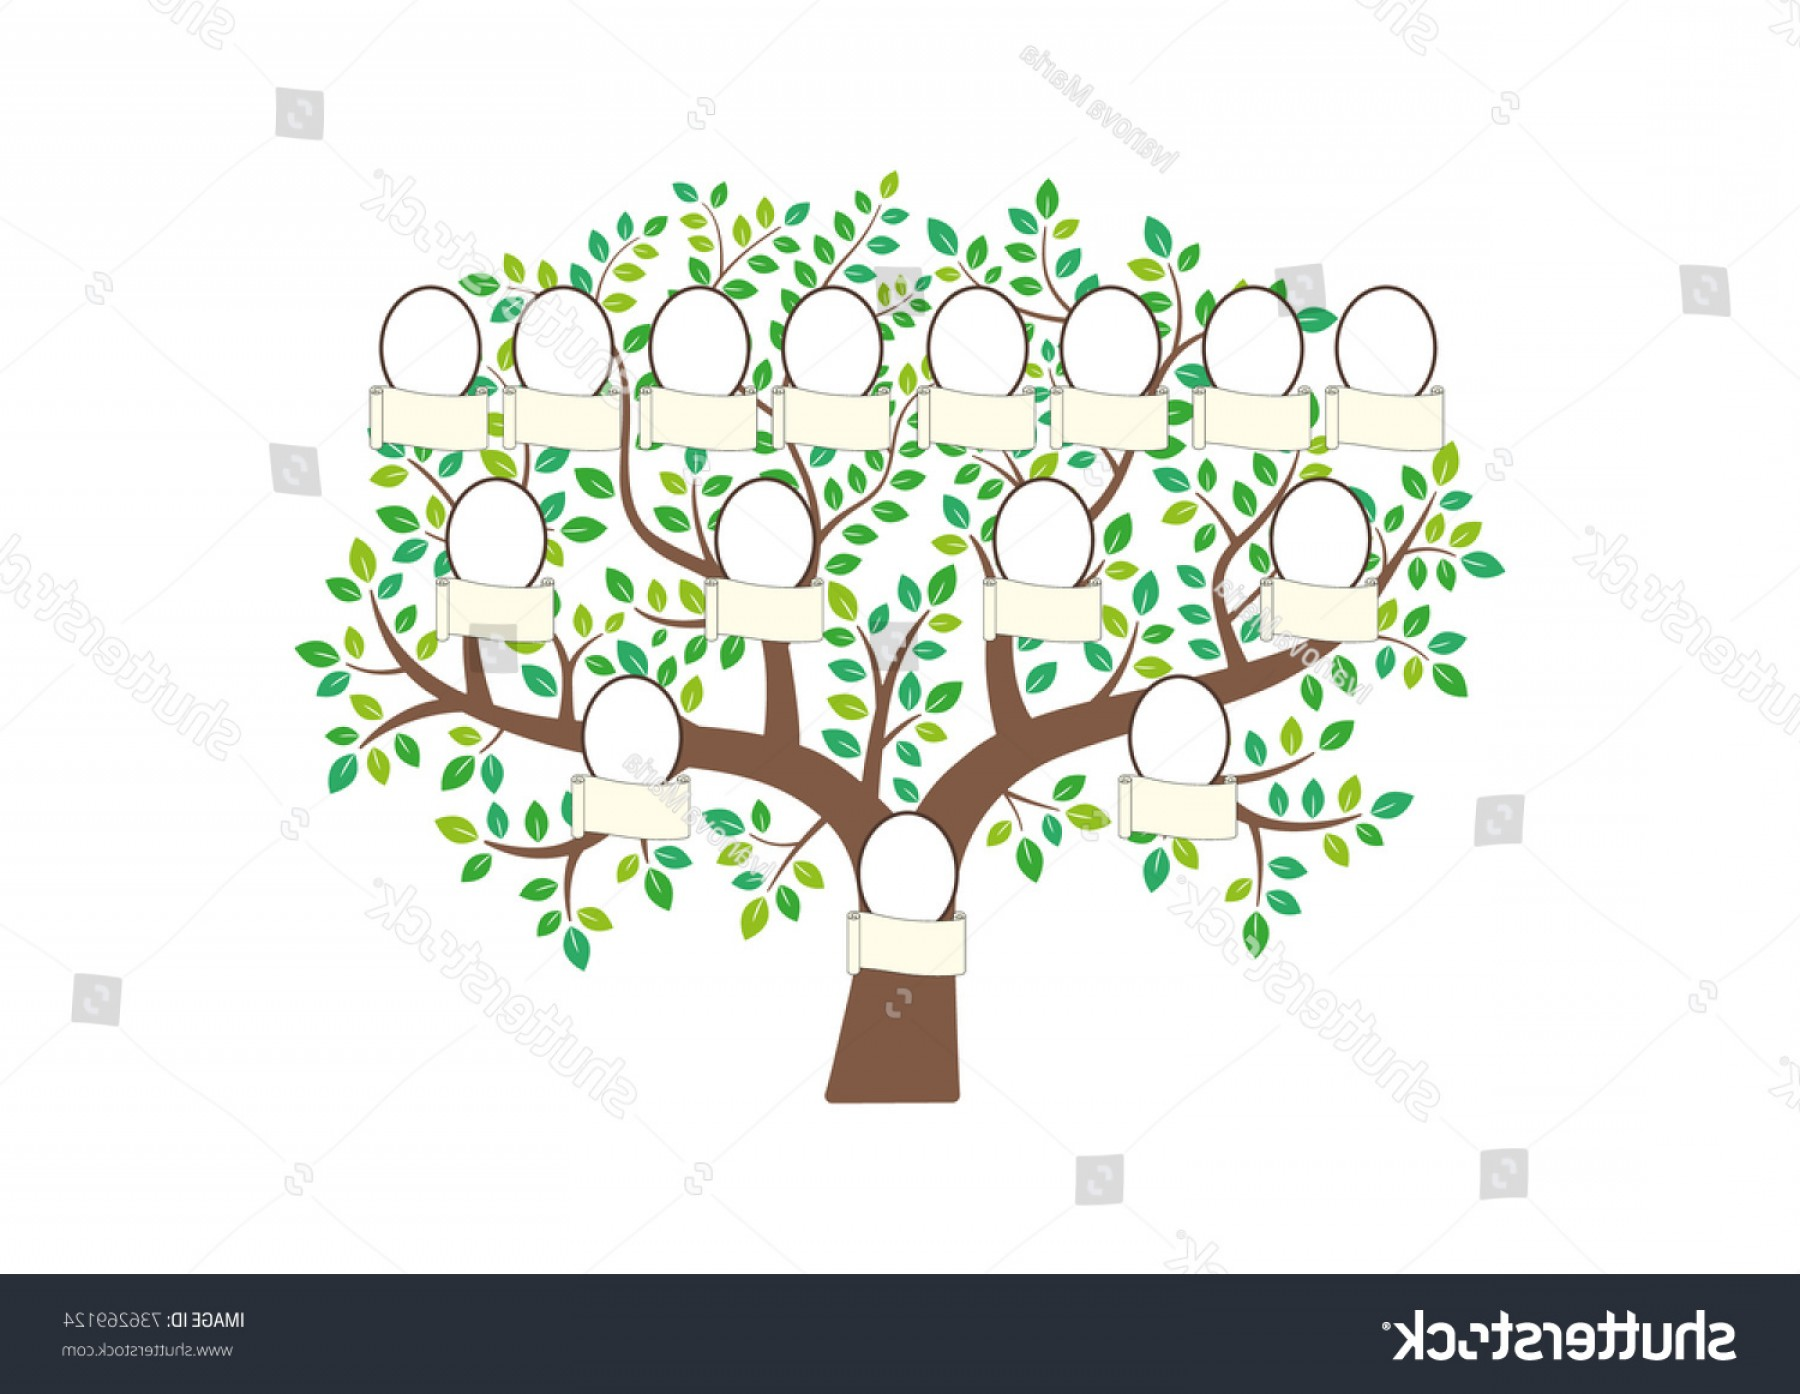 Nameplate Vector Graphics: Family Tree Nameplate Vector Illustration